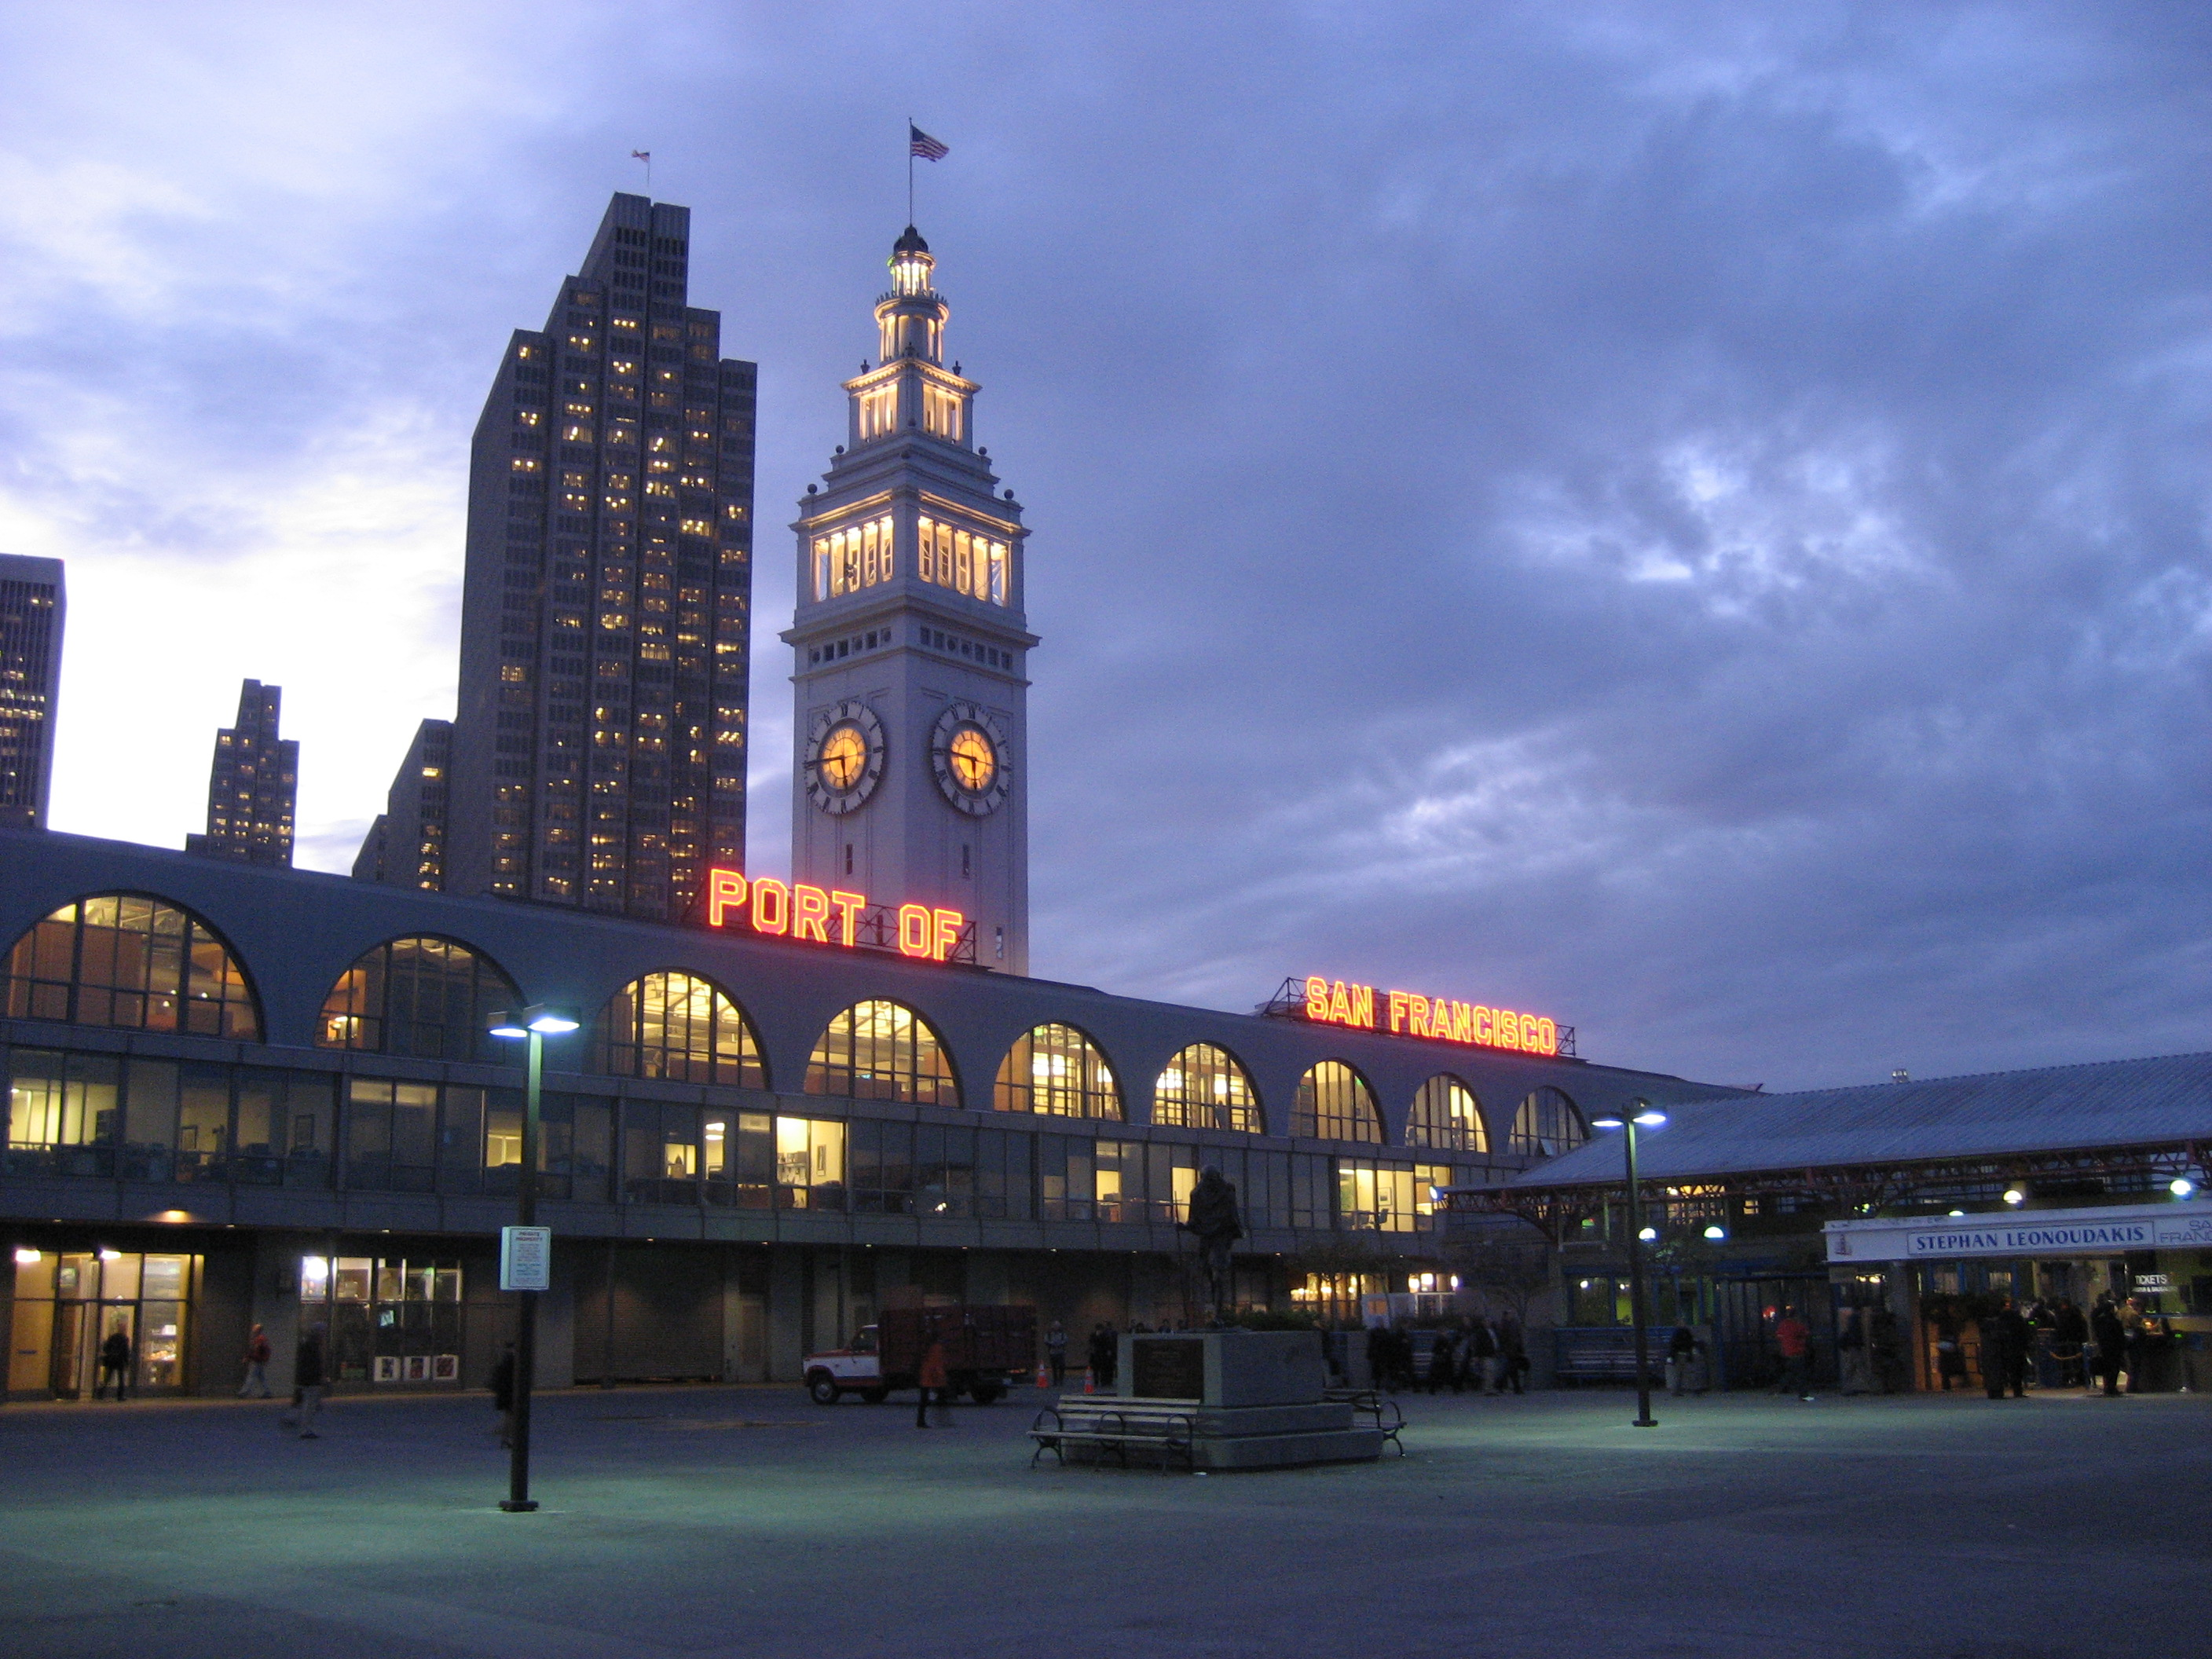 Sf ferry building at night